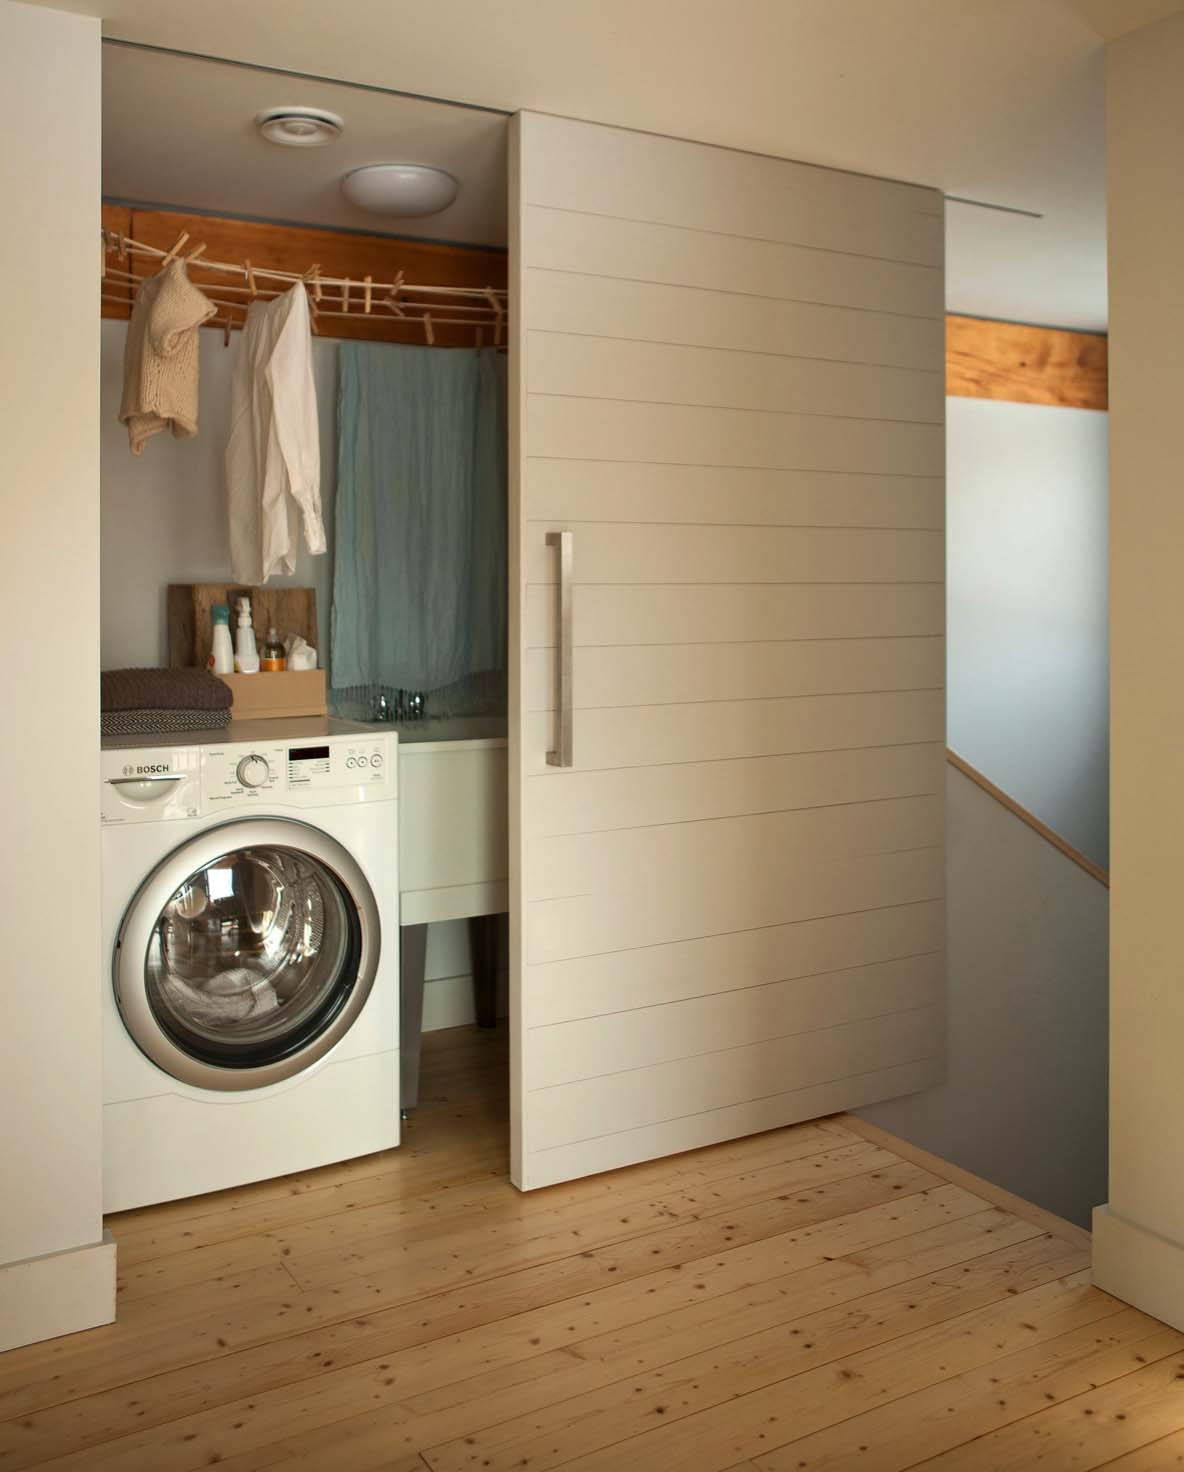 Functional-Stylish Small Laundry Rooms-09-1 Kindesign